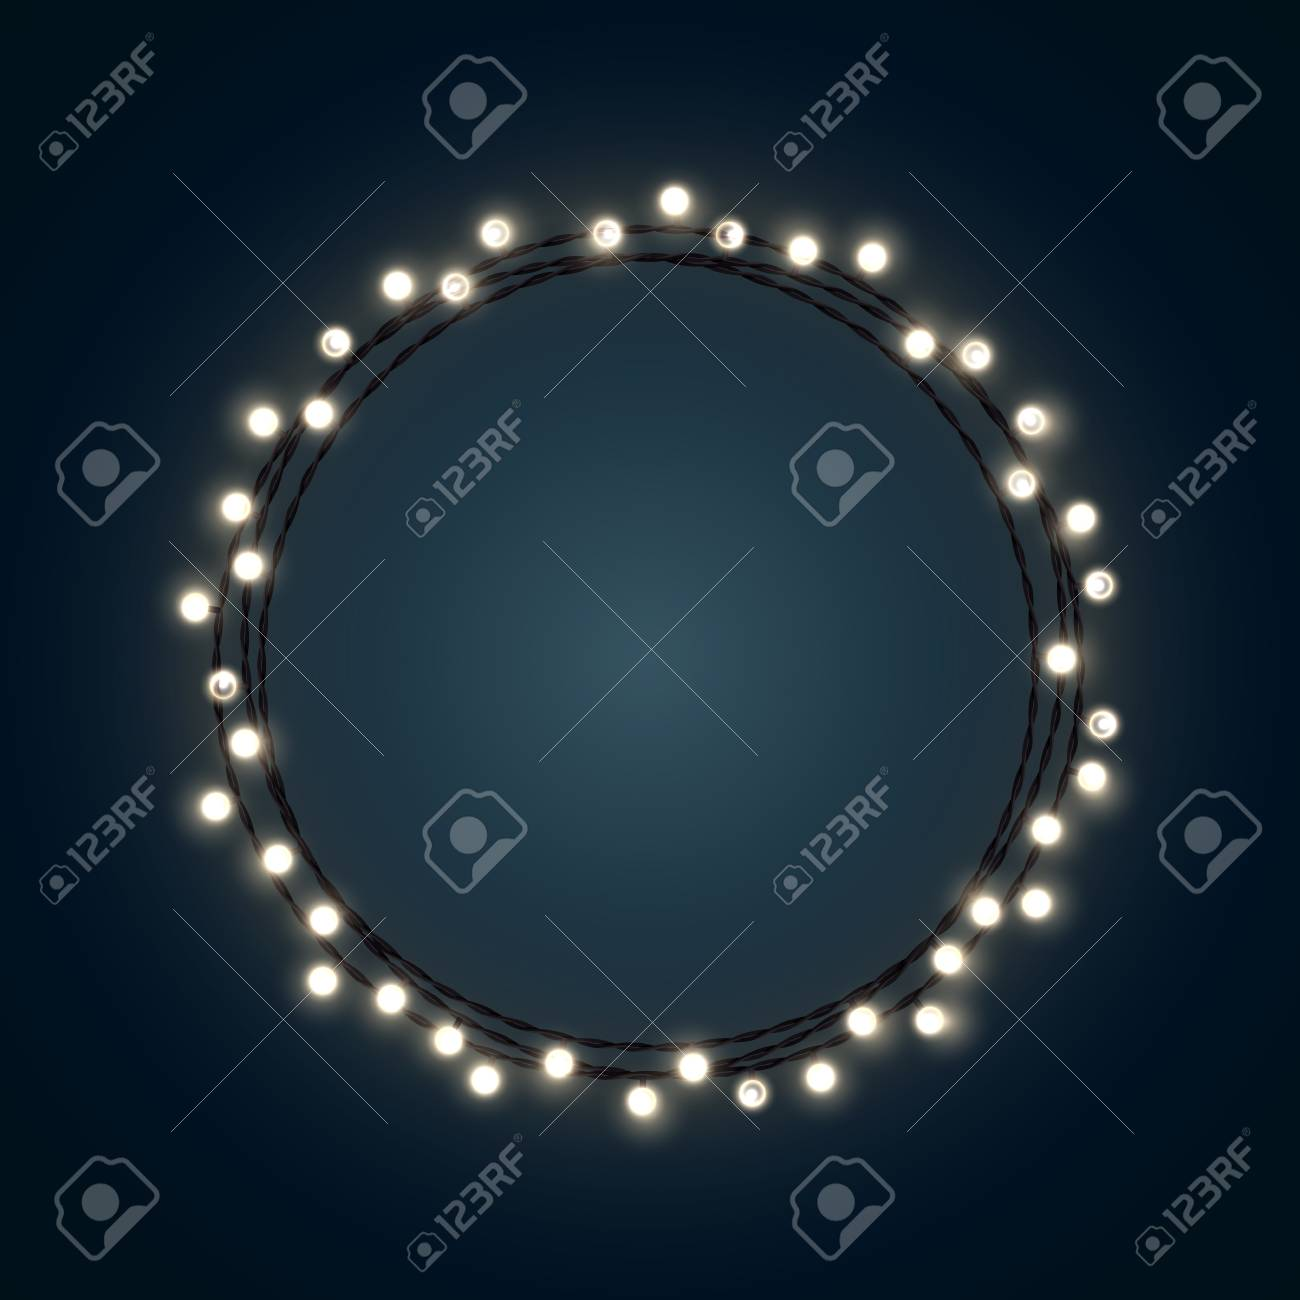 Vector   White Christmas Incandescent Light String Wreath On The Dark Blue  Outdoor Patio Lights.